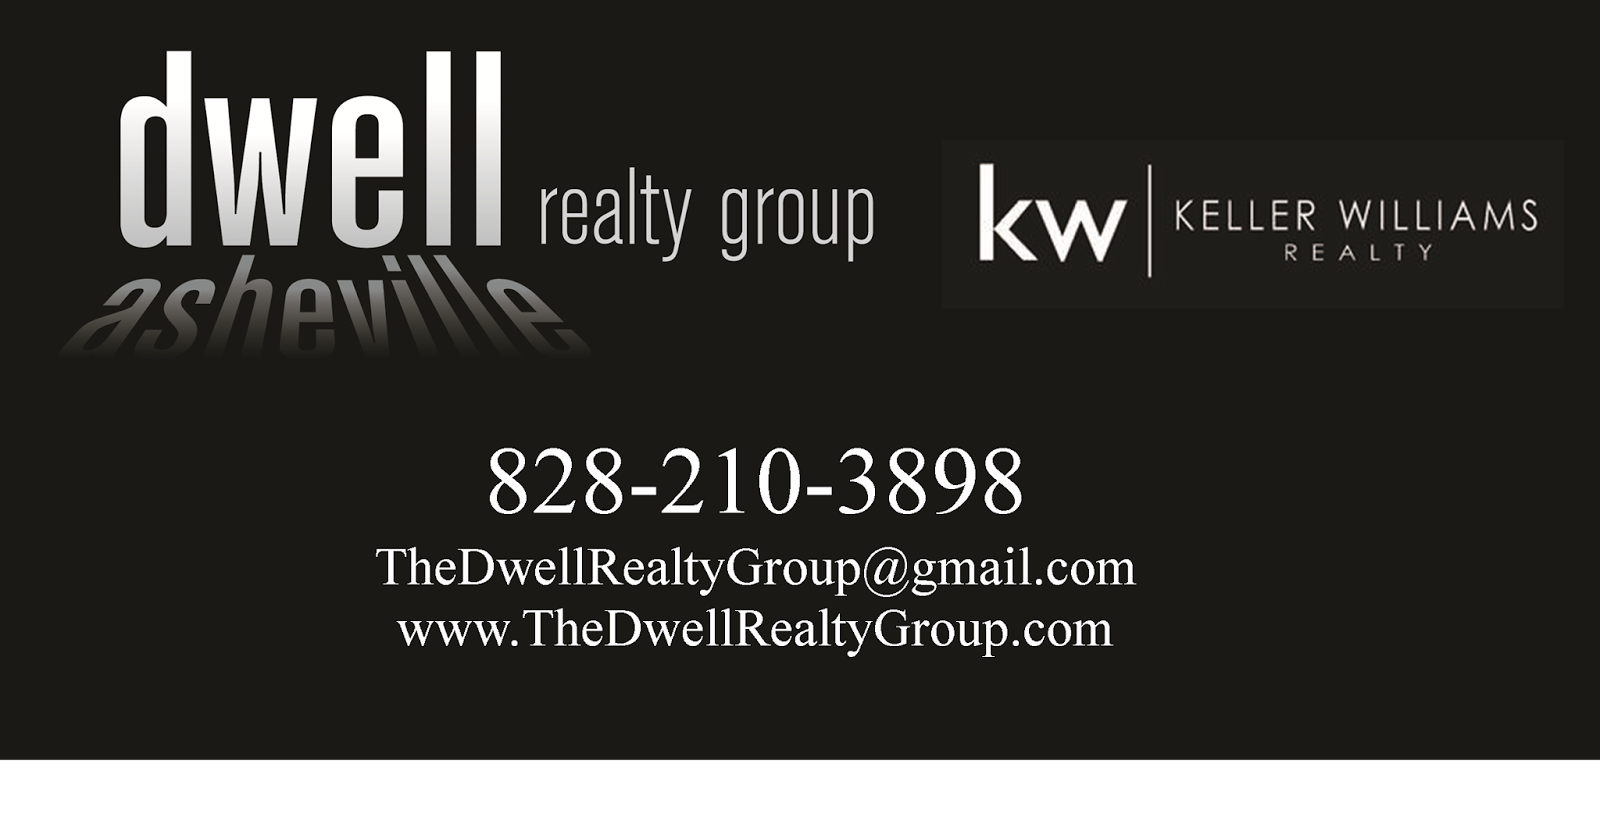 http://www.thedwellrealtygroup.com/